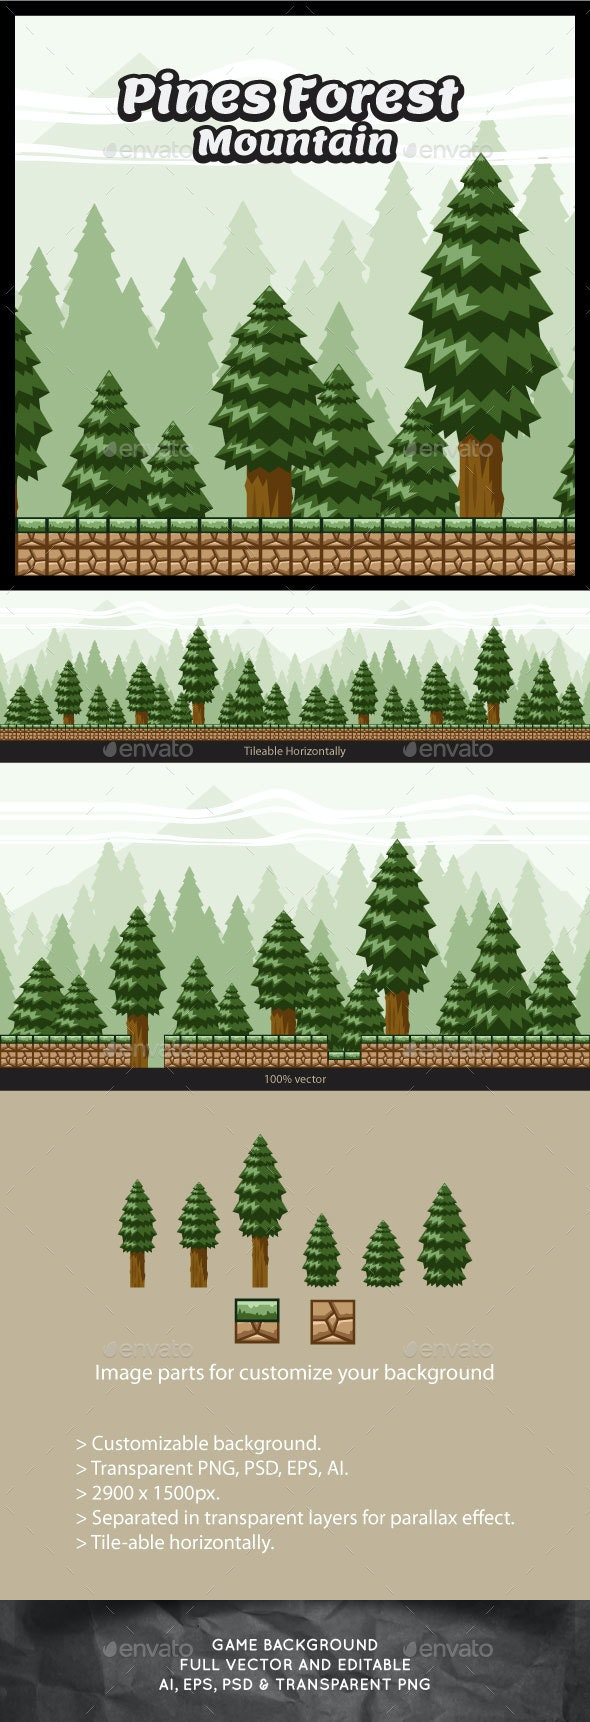 Pine Forest Mountain Game Background - Backgrounds Game Assets